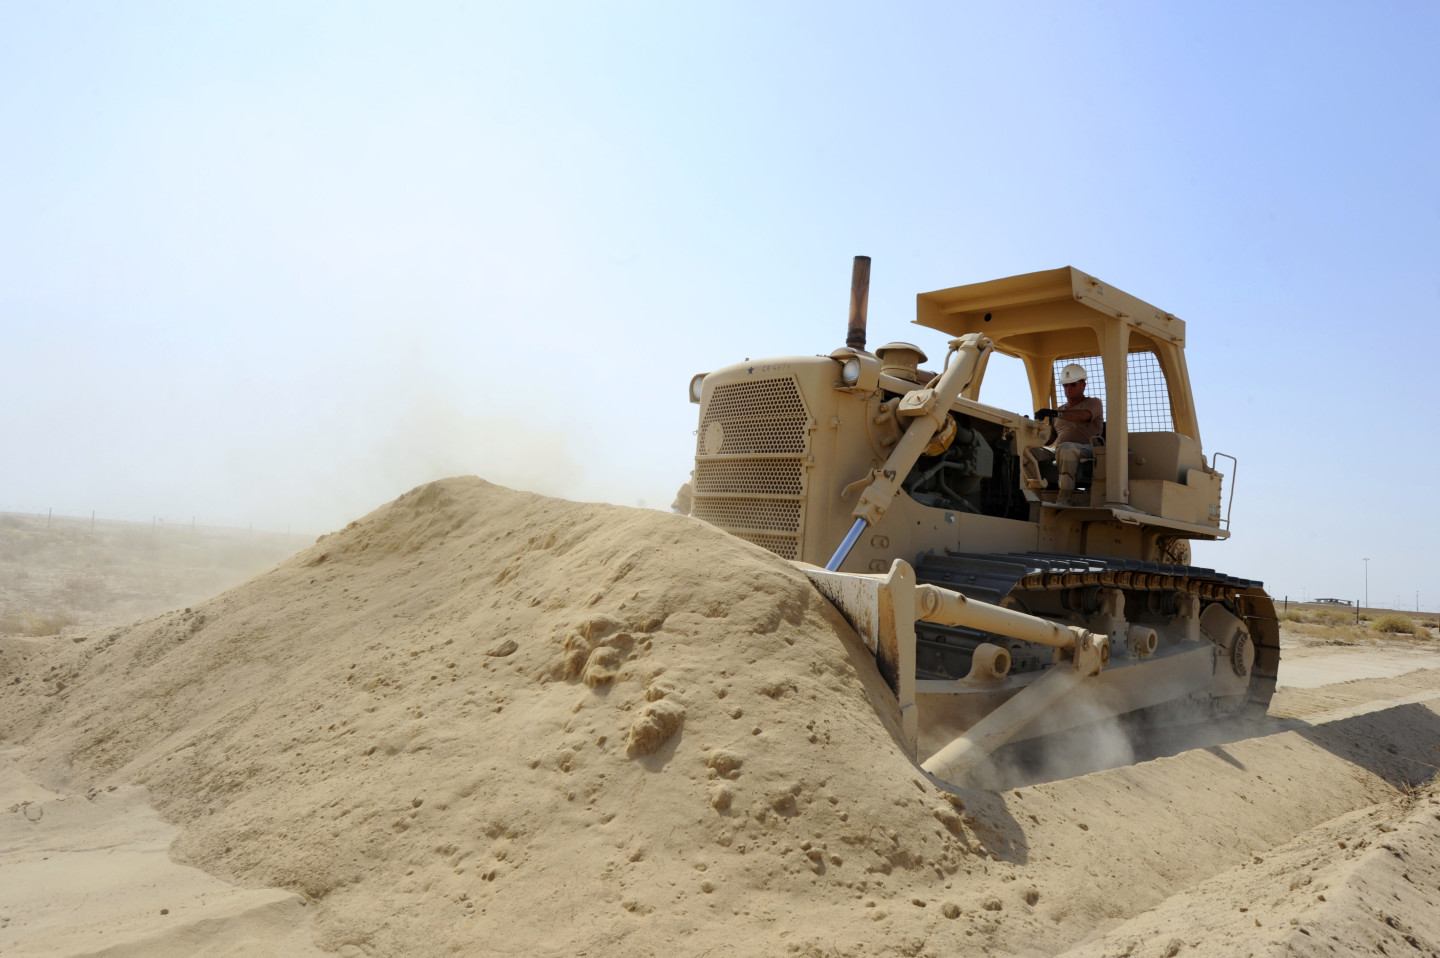 110705-N-WL435-178 KUWAIT NAVAL BASE, Kuwait (July 5, 2011) Master Chief Equipment Operator Charles Boris, assigned to Task Group (TG) 56.2, pushes sand with a bulldozer to reinforce an existing berm at a joint forces weapons training range in Kuwait. TG 56.2 naval construction forces provide expeditionary engineering and construction support for forward deployed forces in the U.S. 5th Fleet area of responsibility. (U.S. Navy photo by Mass Communication Specialist 1st Class Peter D. Lawlor/Released)